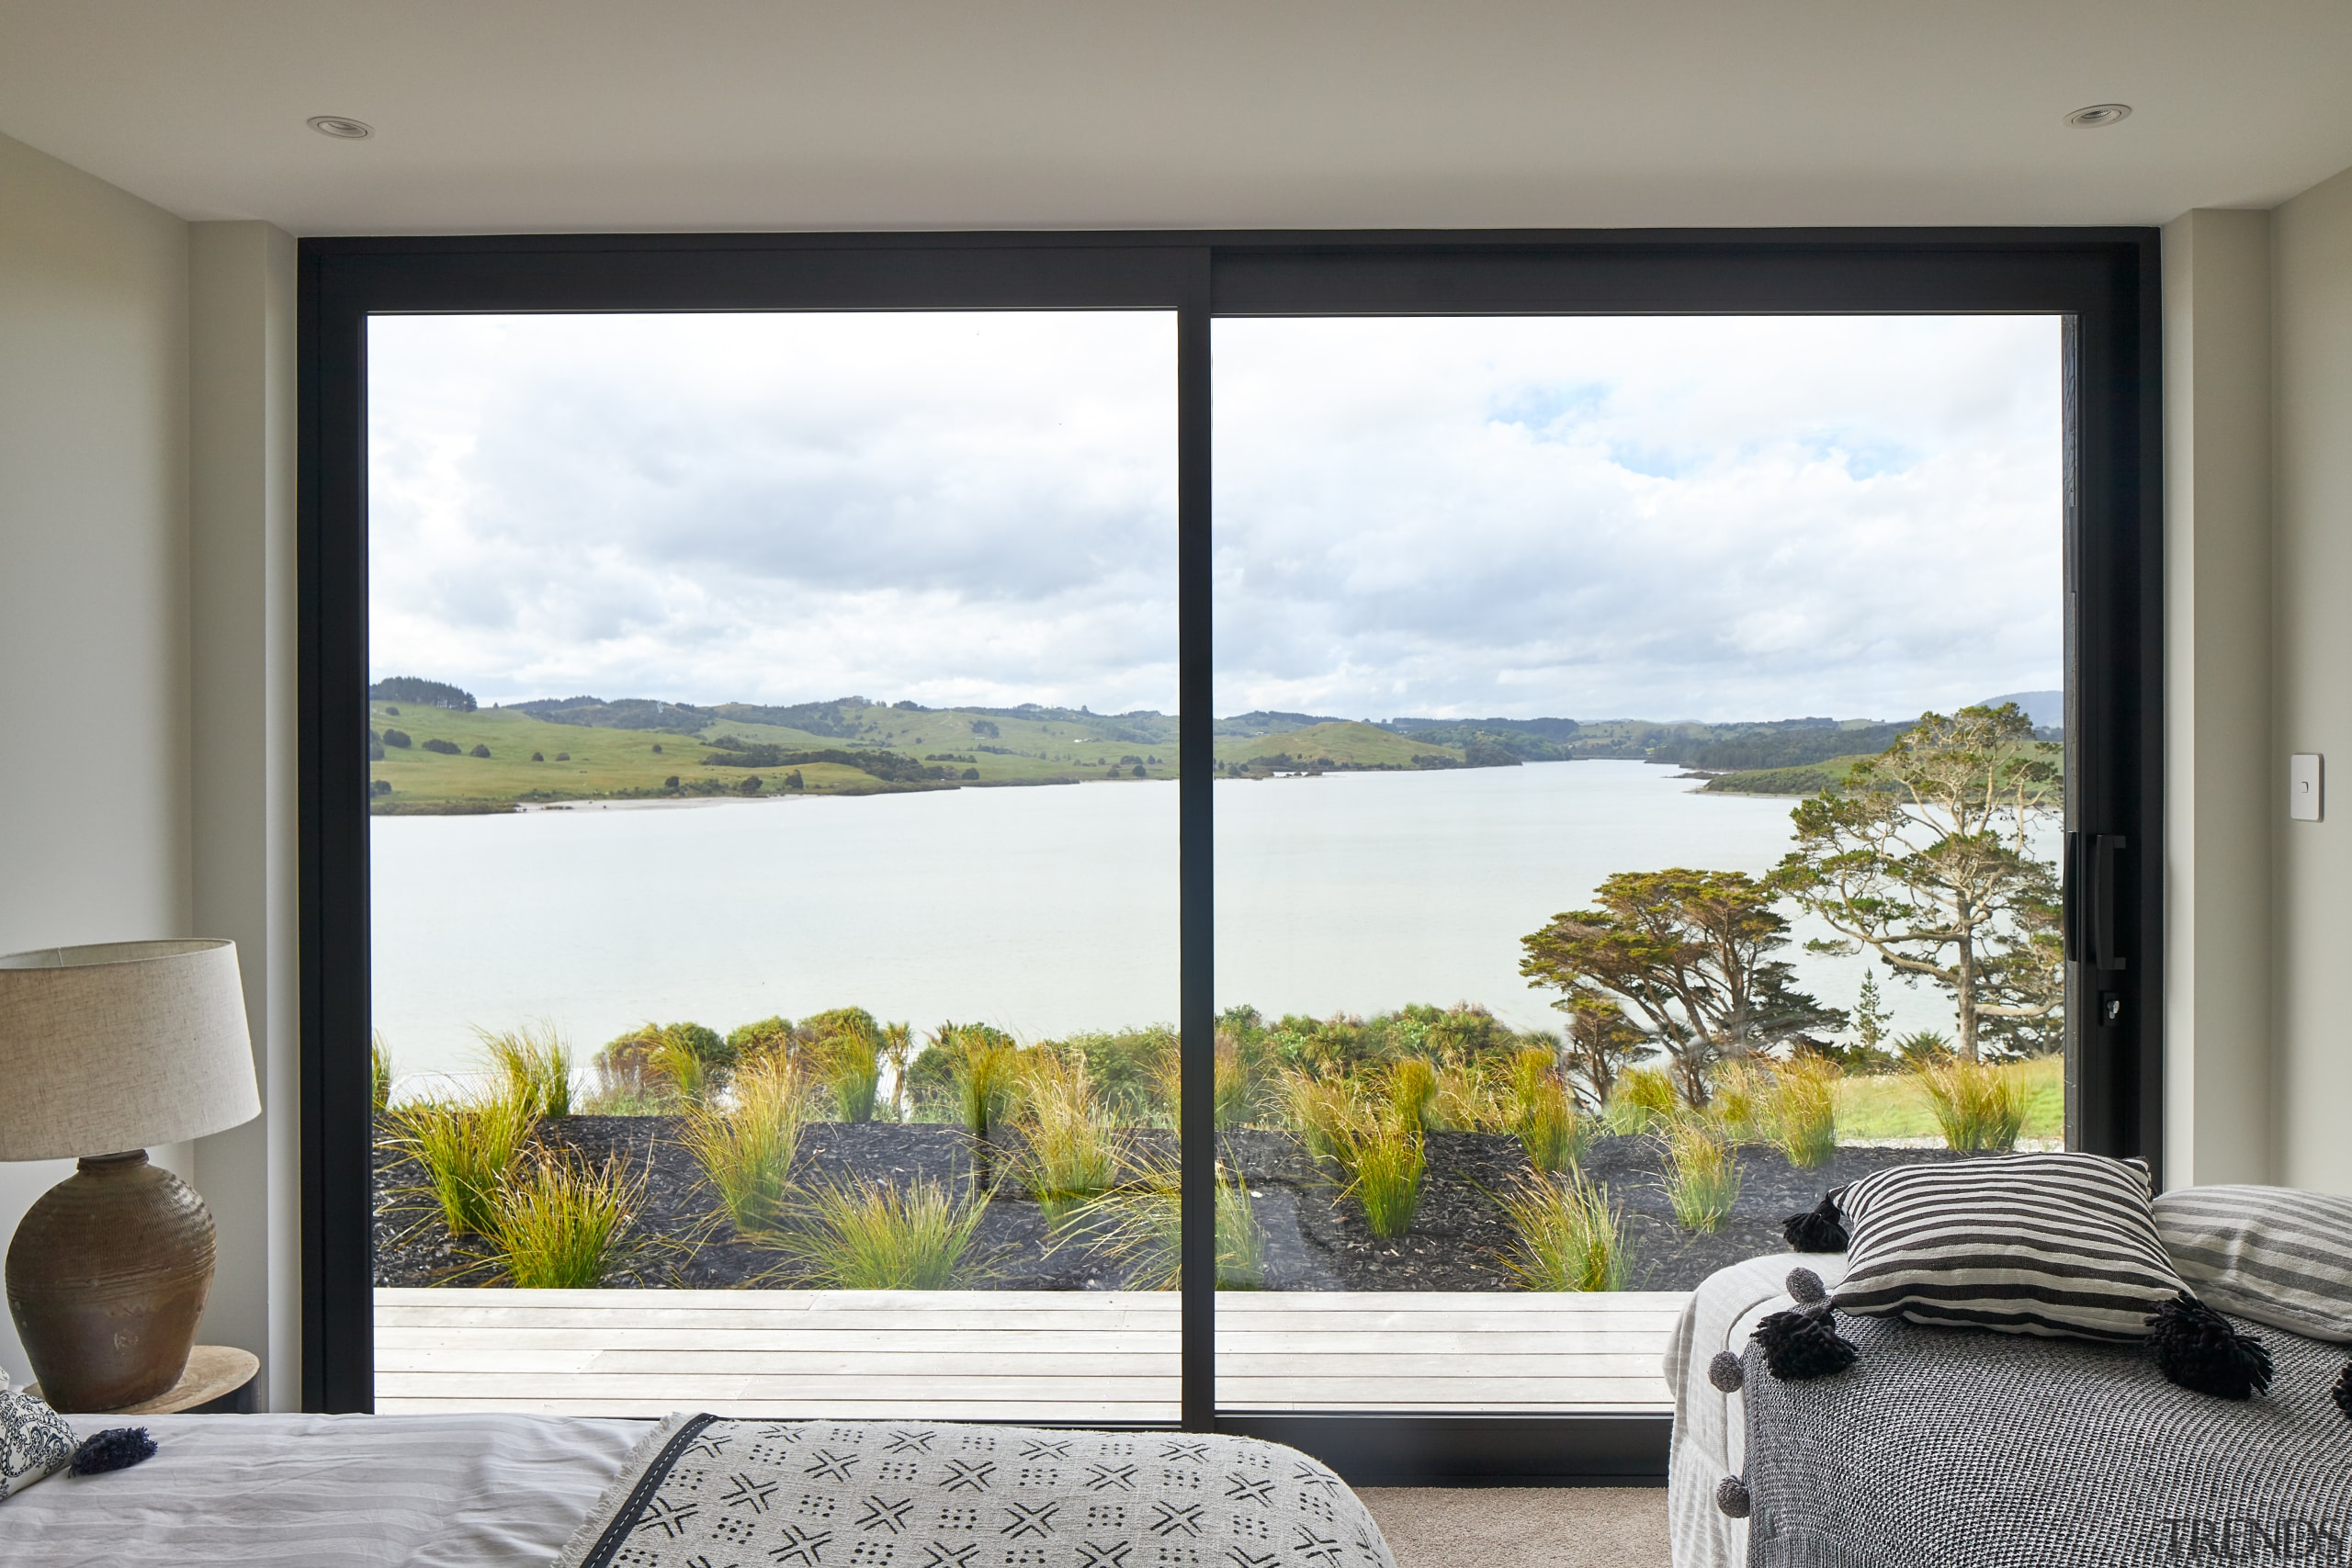 Tawny carpets in this home's bedrooms connect with